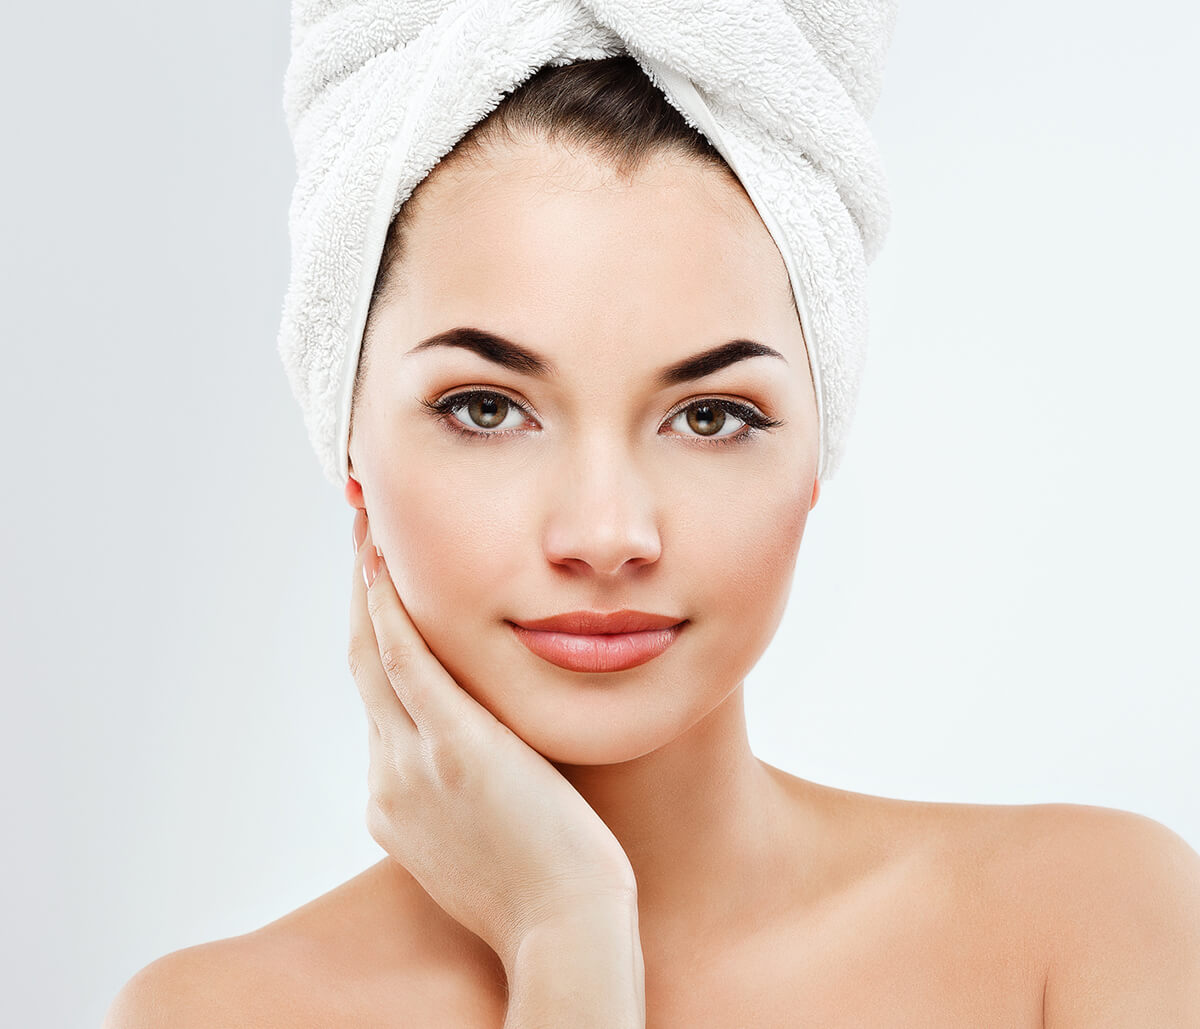 Enhance Your Skin with Fraxel Laser Treatment in Washington DC Area